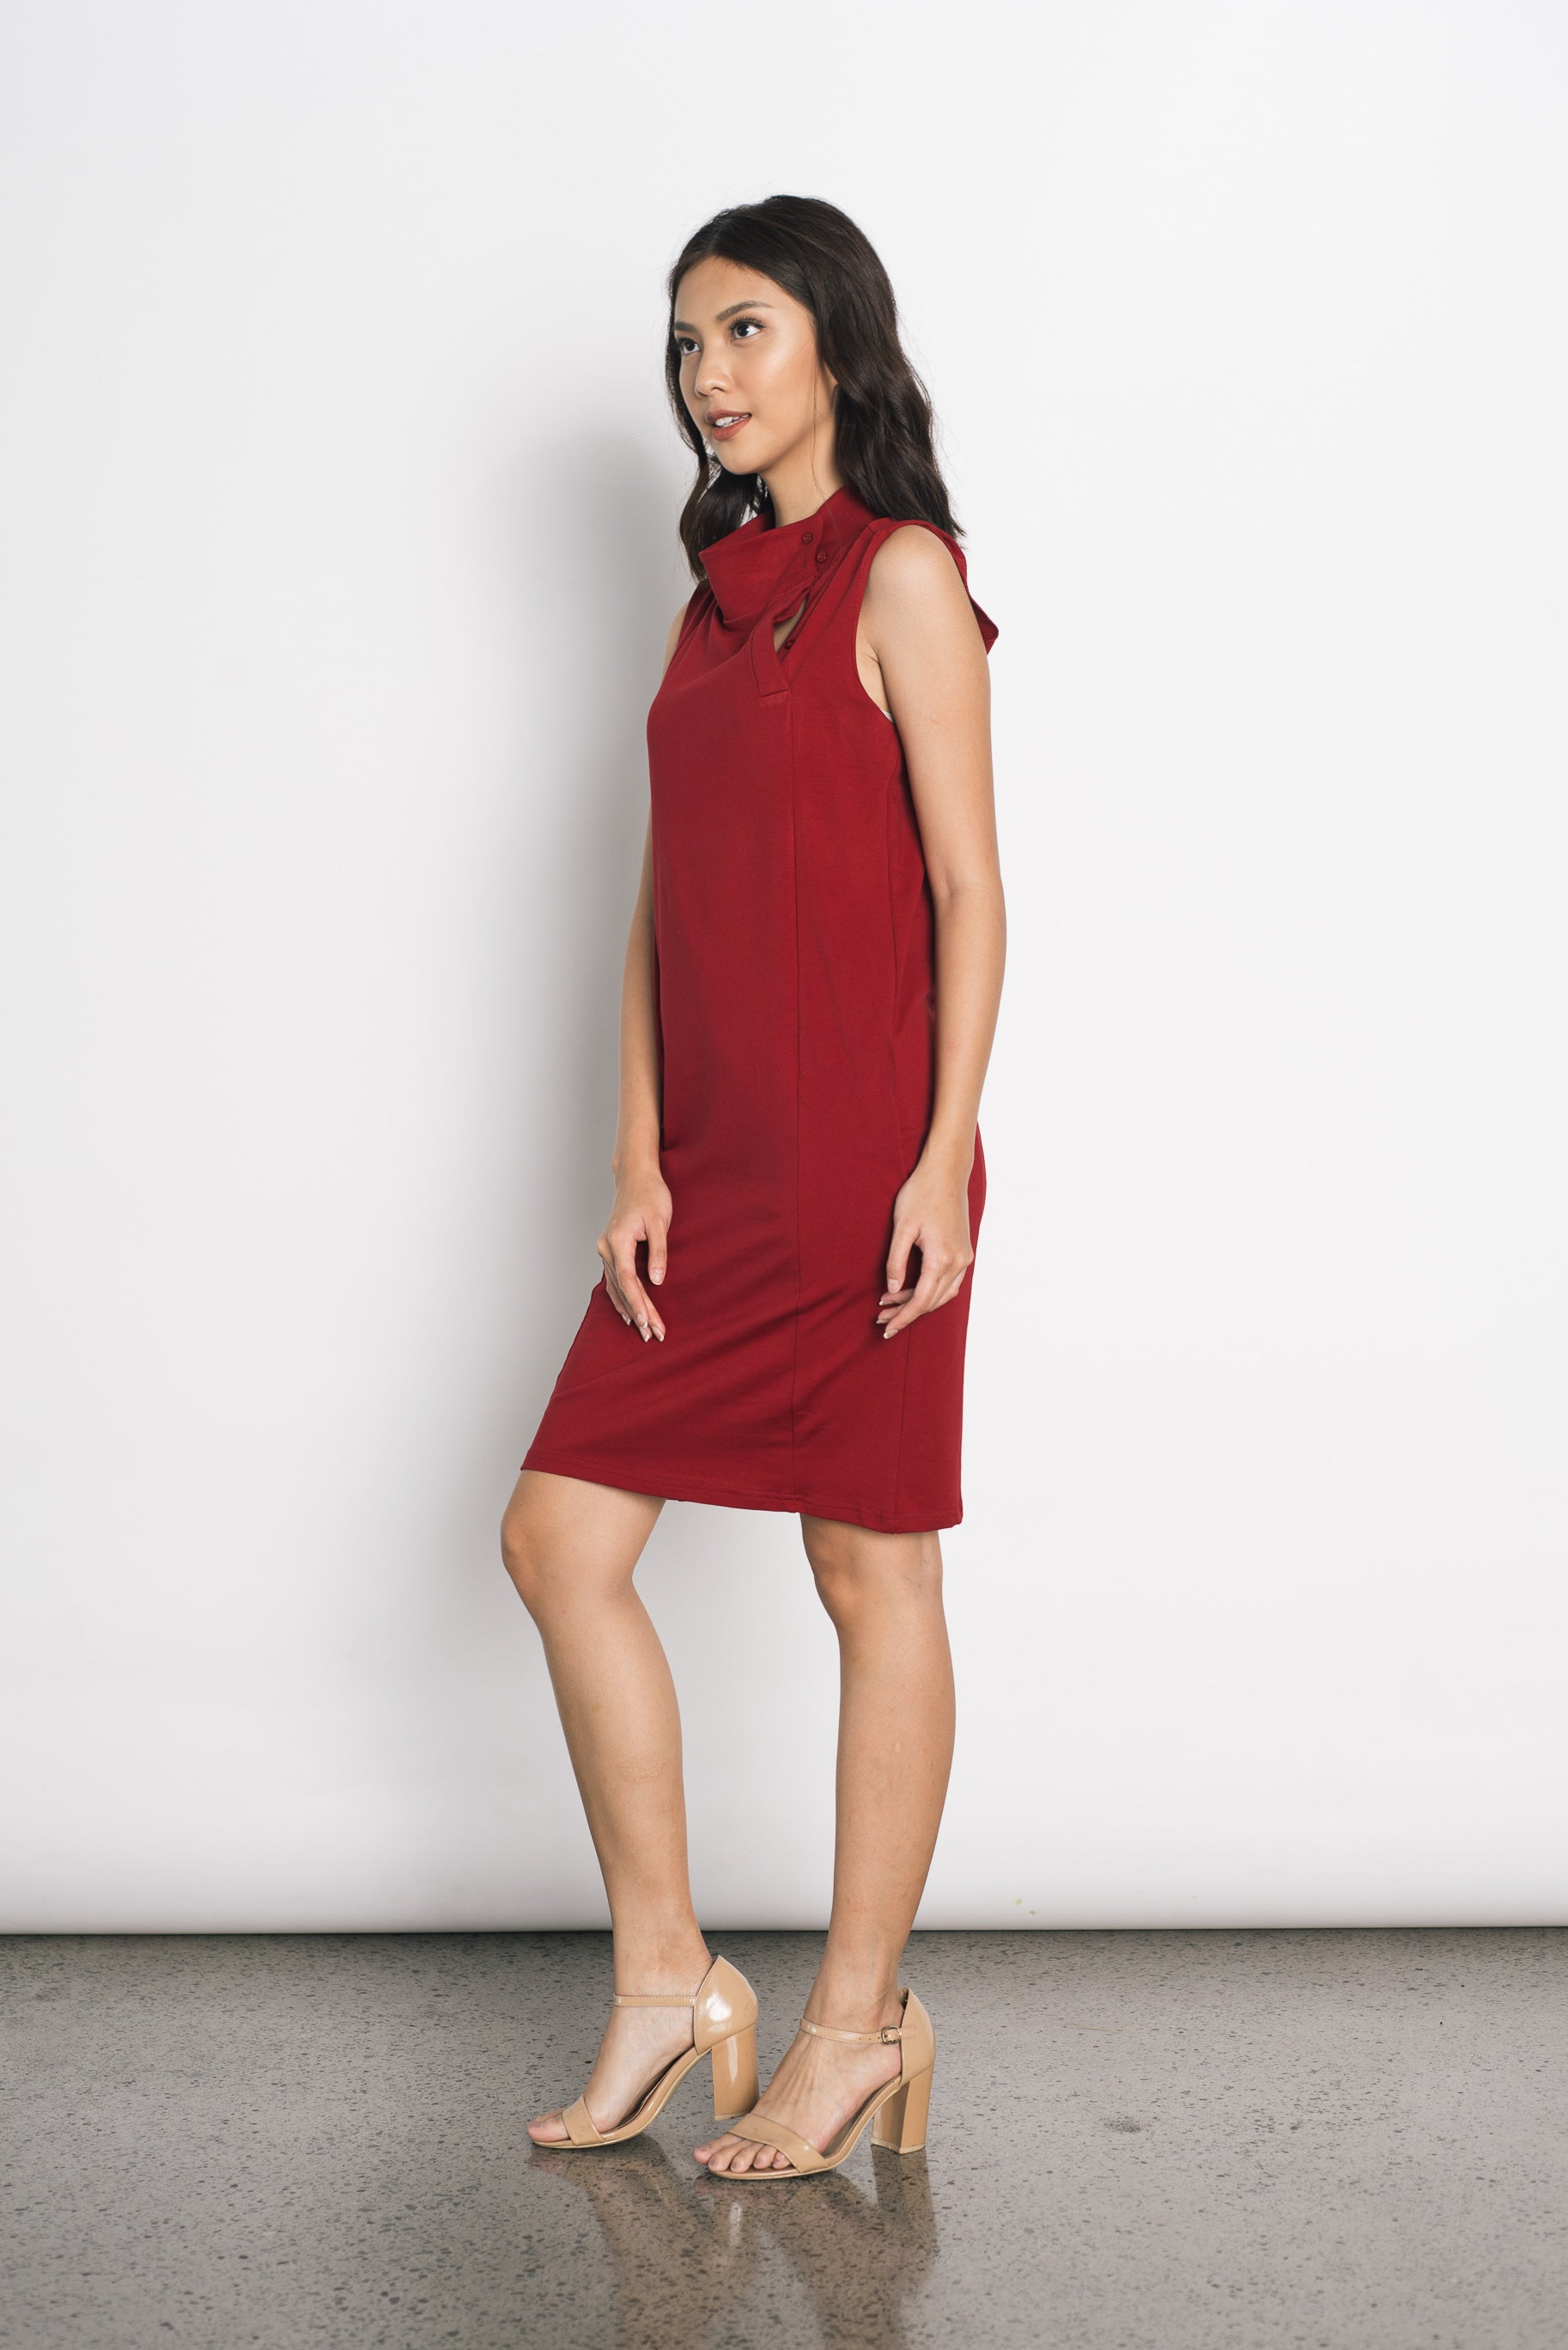 Duci Sleeveless Dress in Red